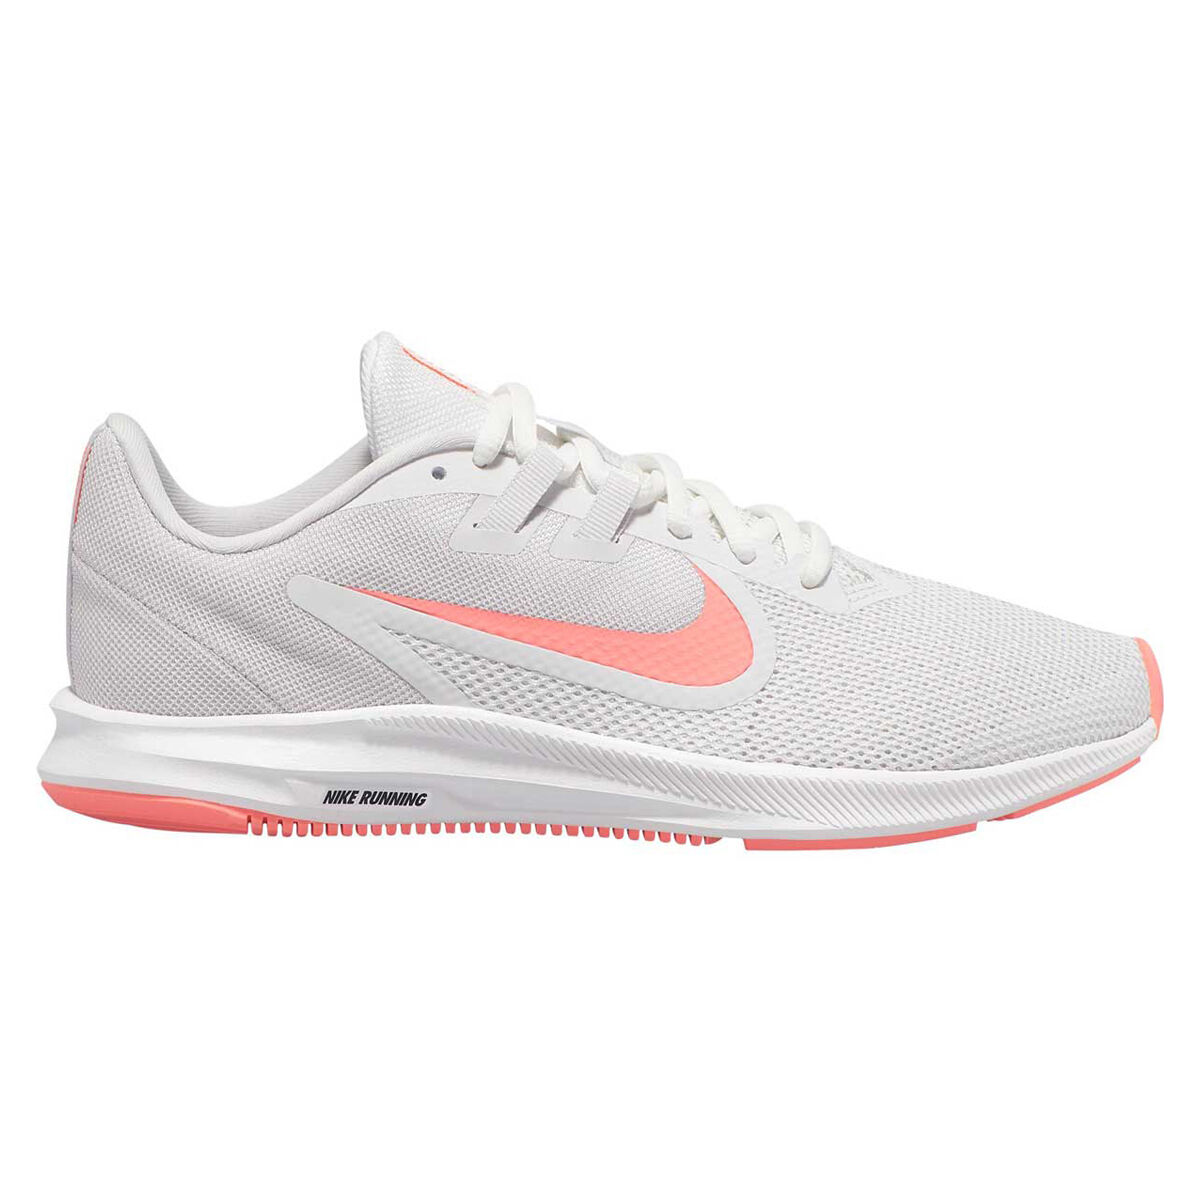 Nike Downshifter 9 Womens Running Shoes